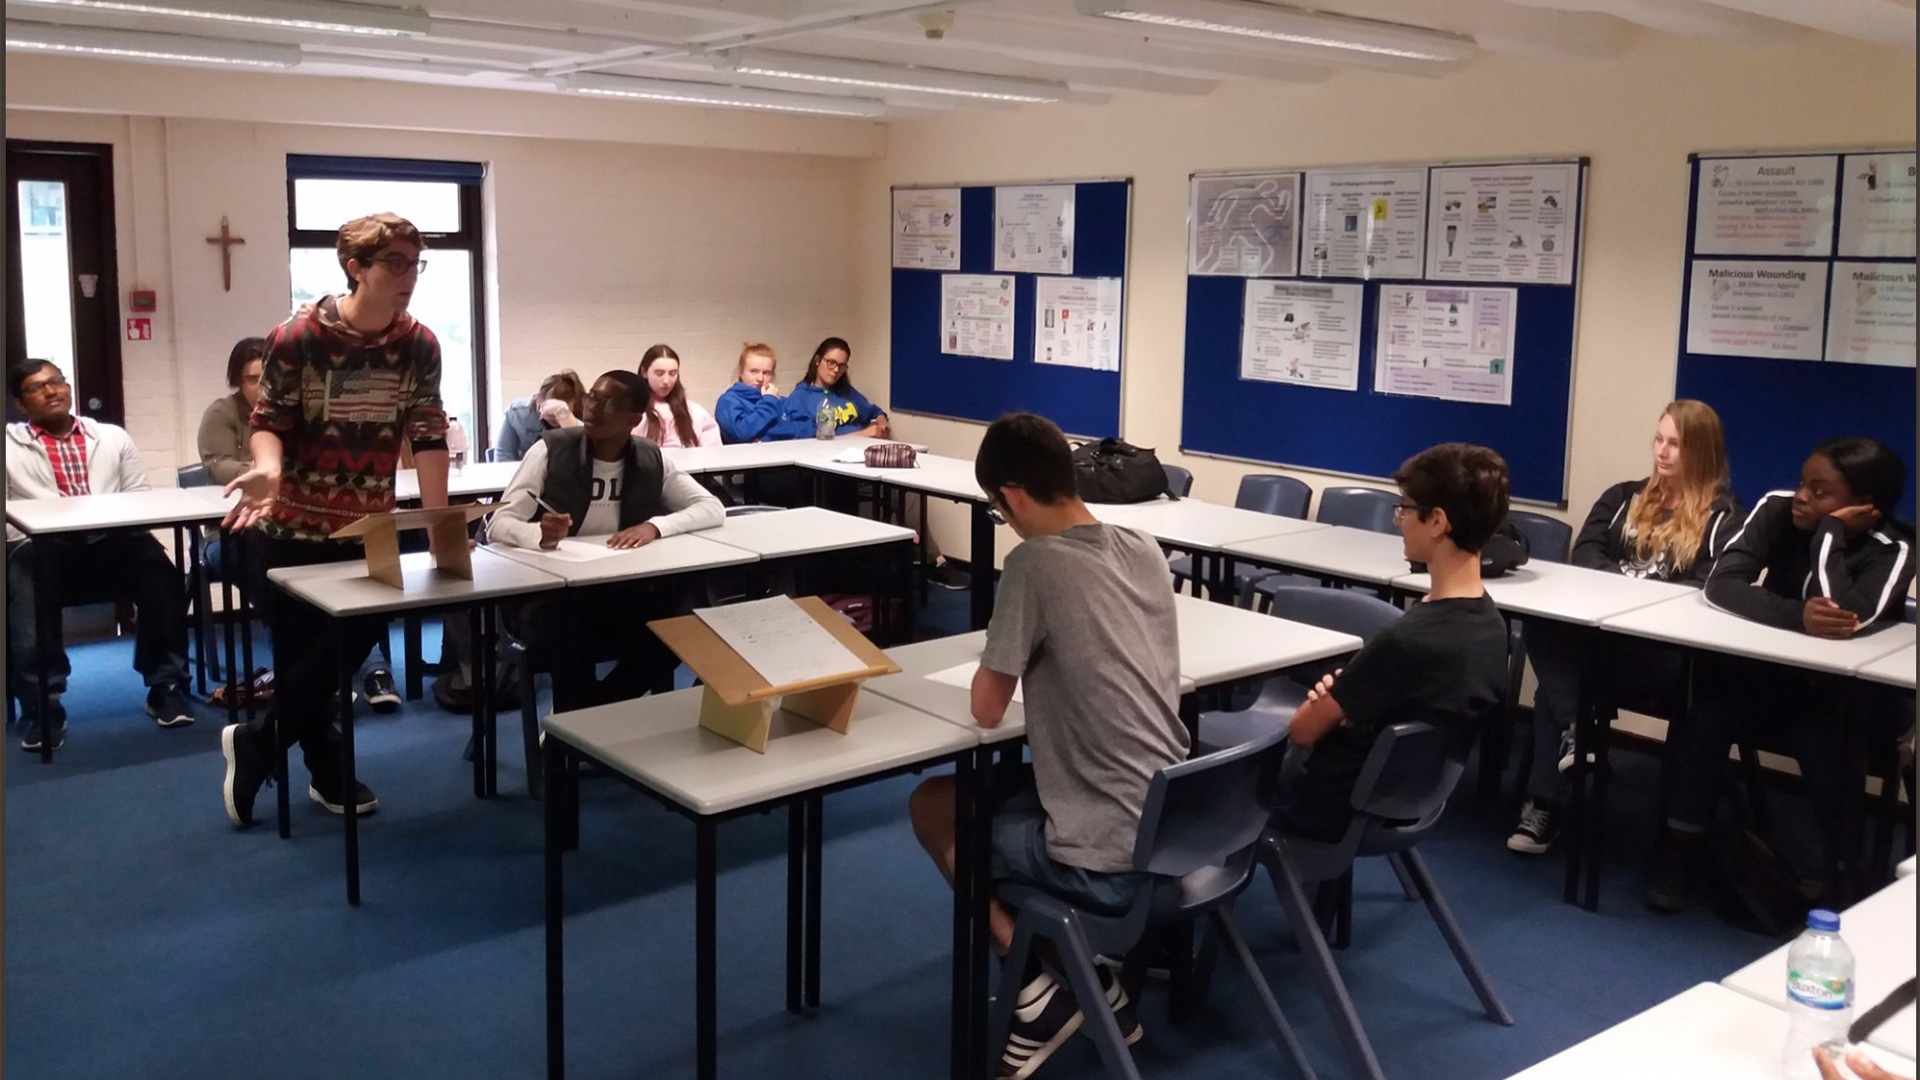 Knowing our rights workshop at St Dominic's 6th Form College (London)